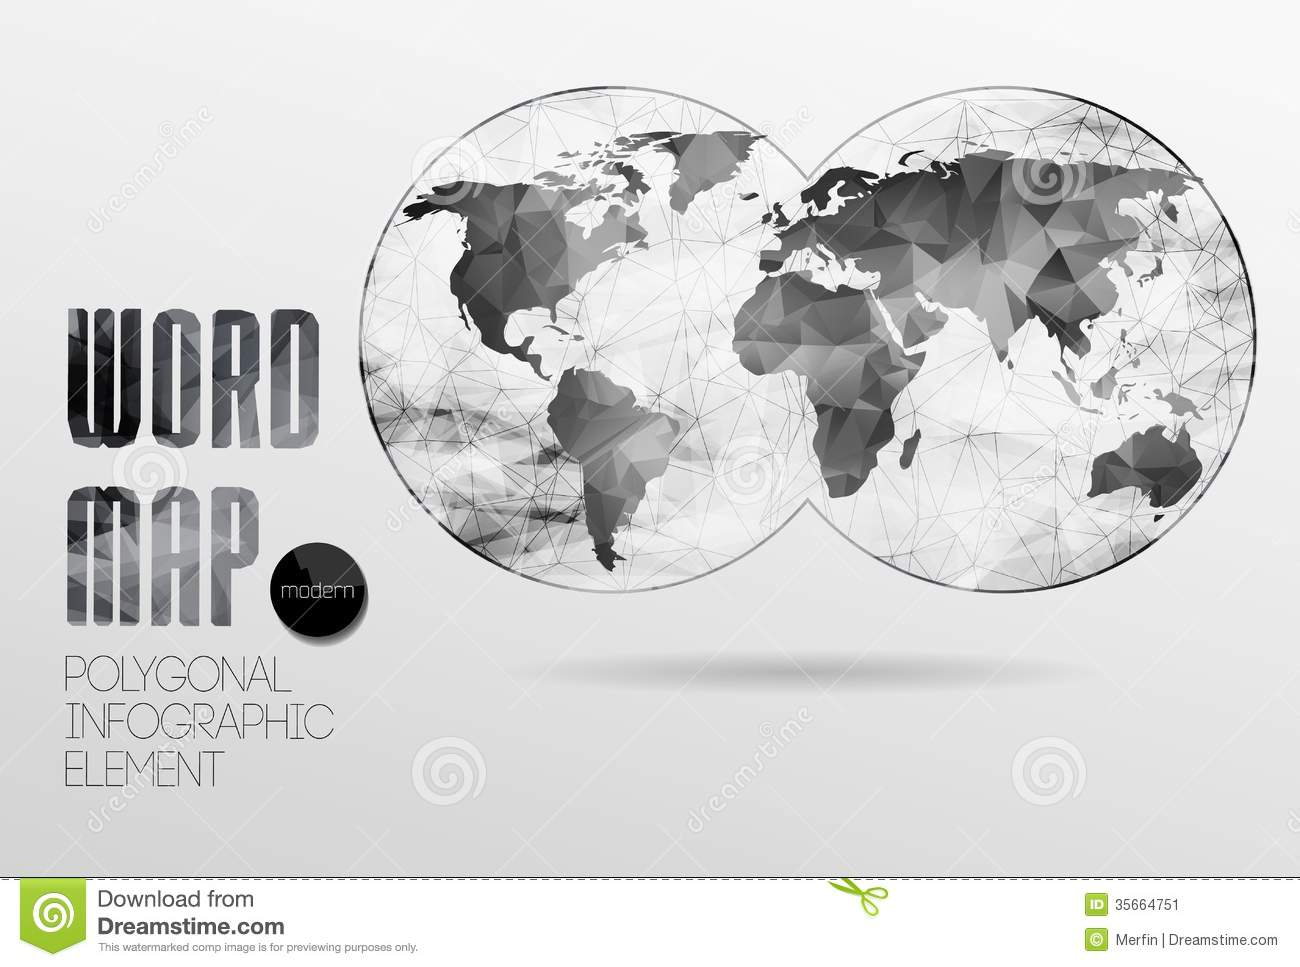 World map and typography stock vector illustration of ship 35664751 download world map and typography stock vector illustration of ship 35664751 gumiabroncs Image collections